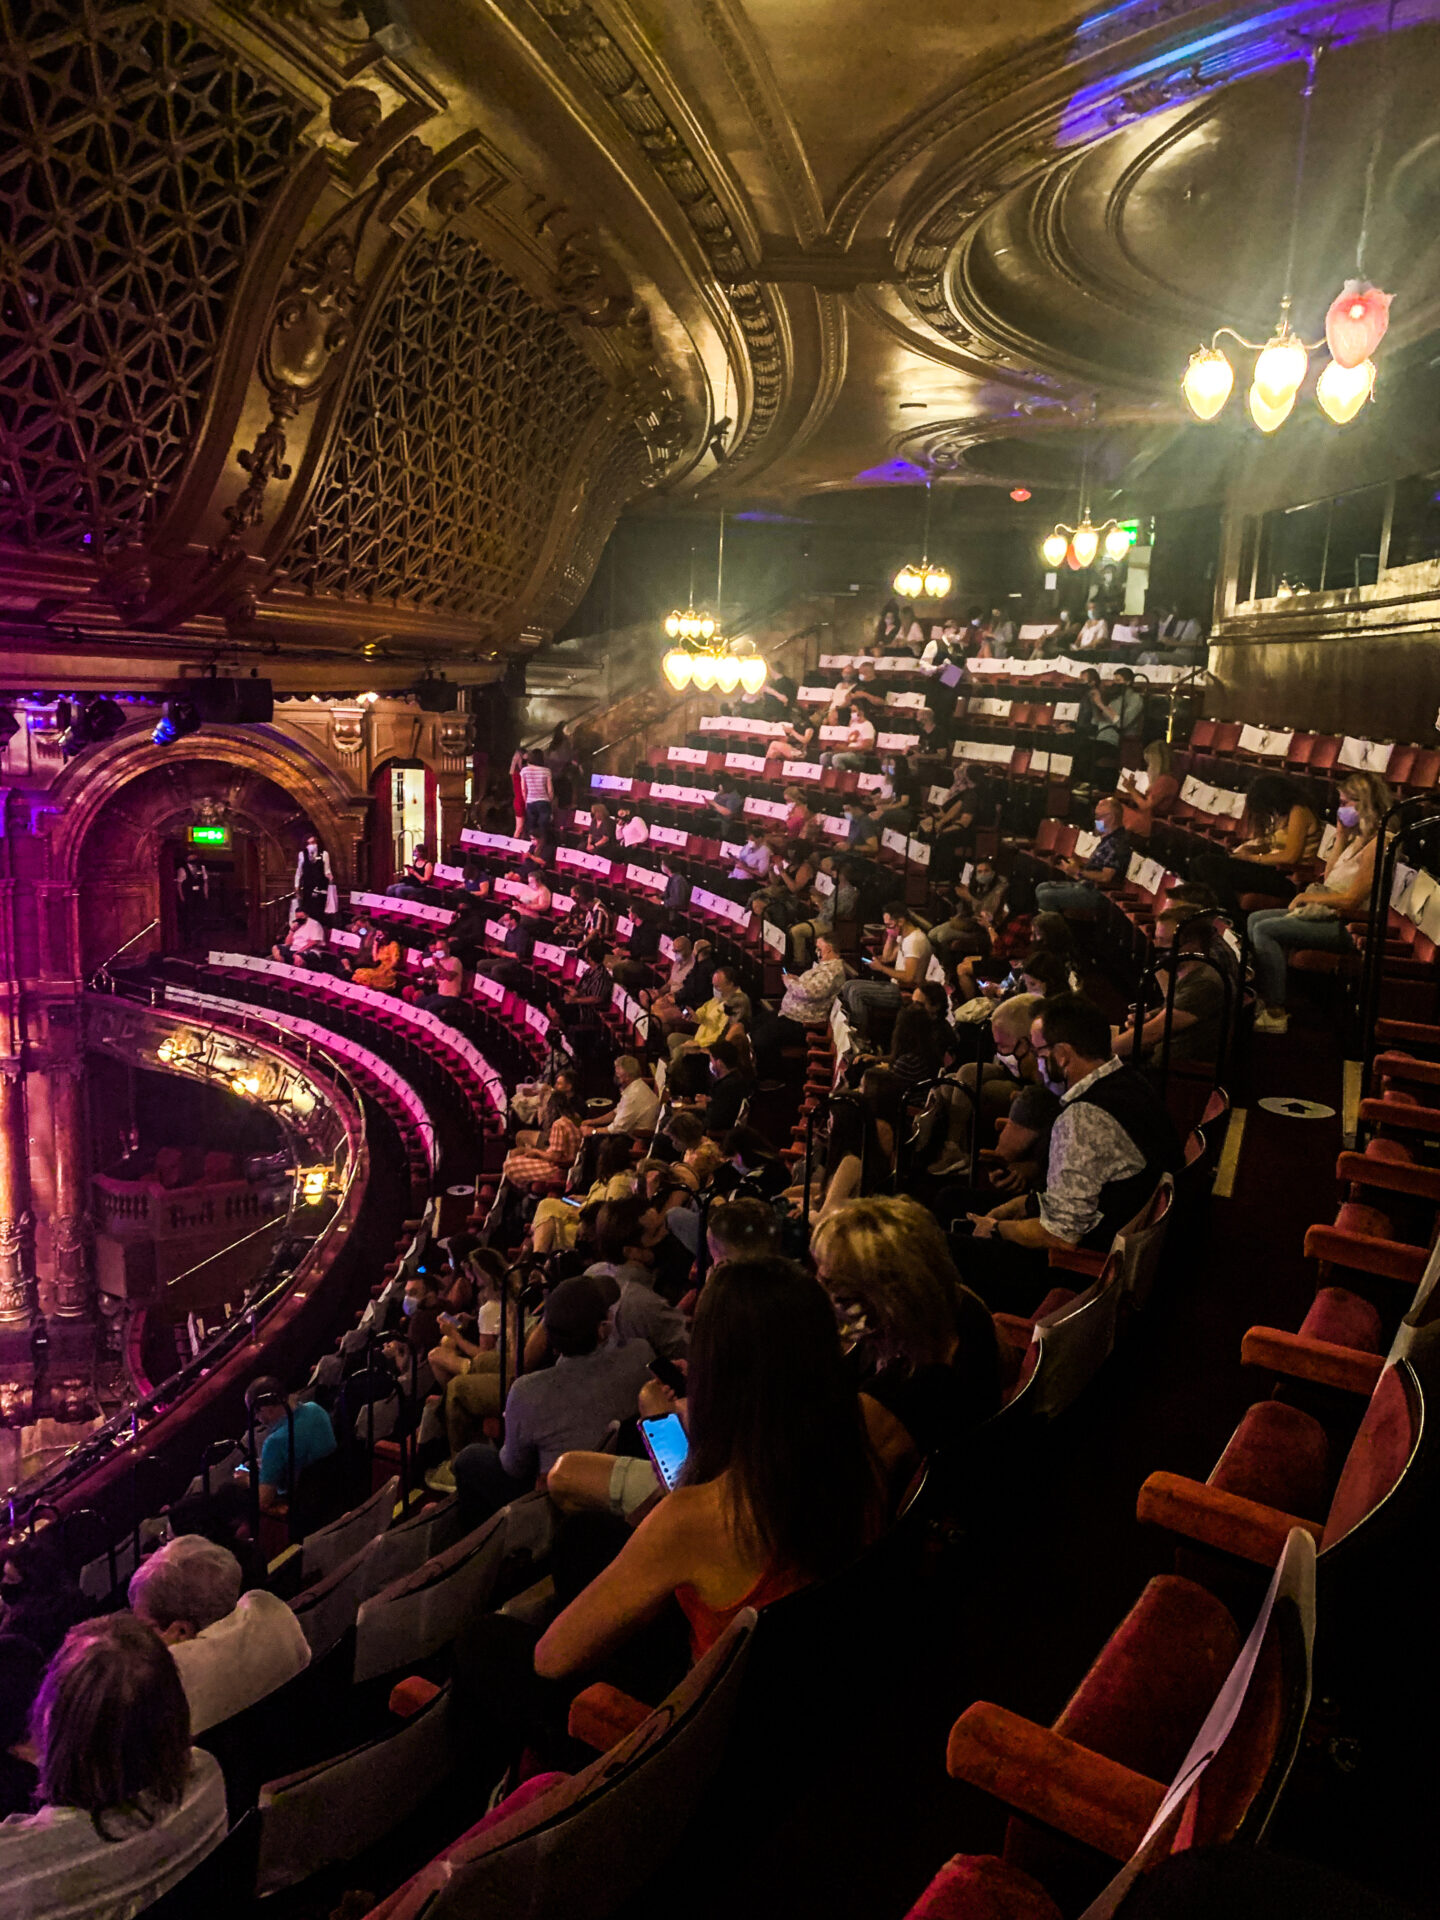 Social distancing inside the London Palladium. The white seats indicate that no one should sit there. There are spaces between each group of people.